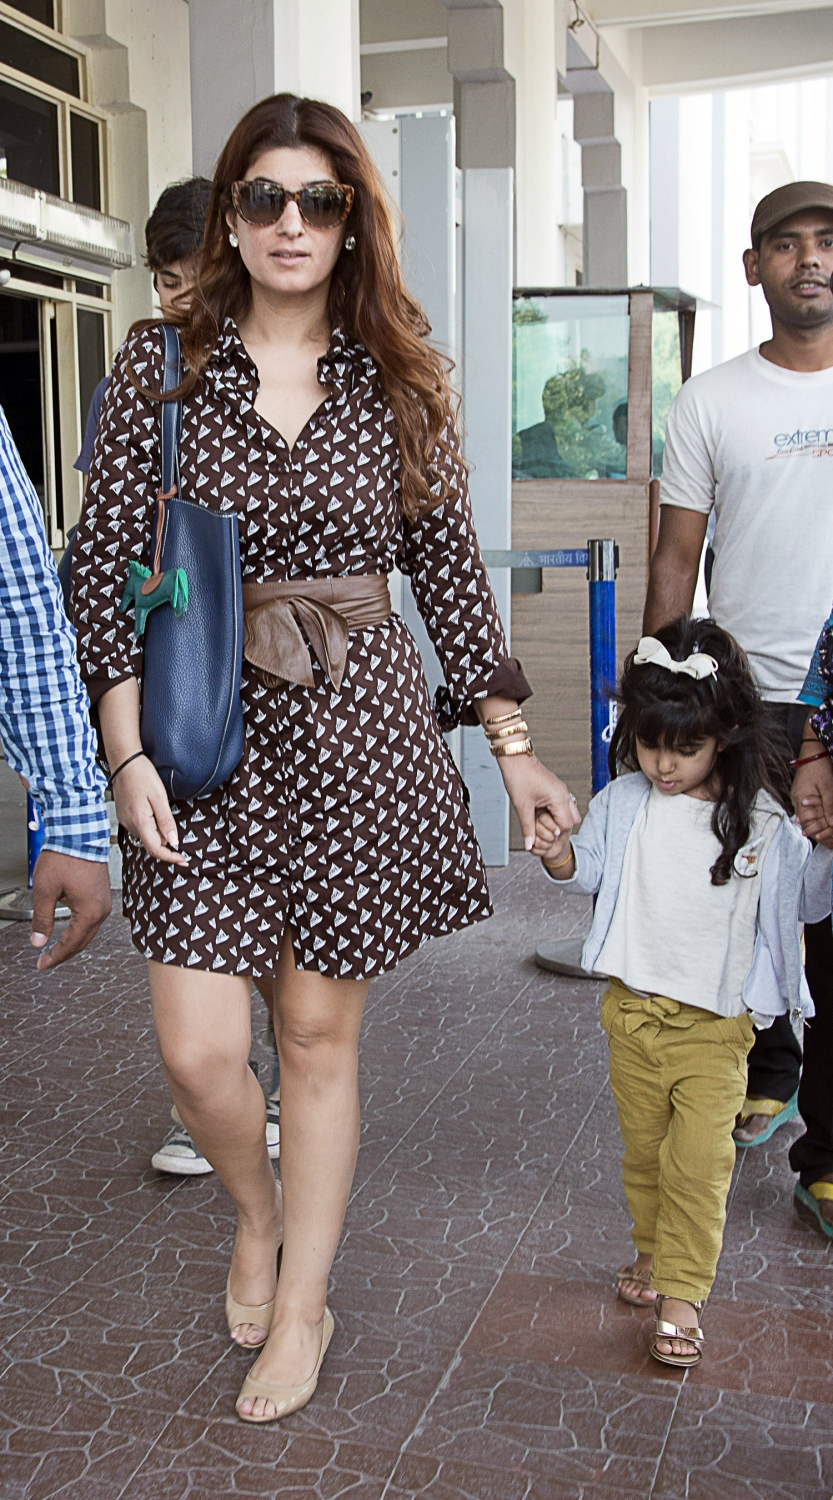 Twinkle Khanna with Her Kids Spotted at Jodhpur Airport